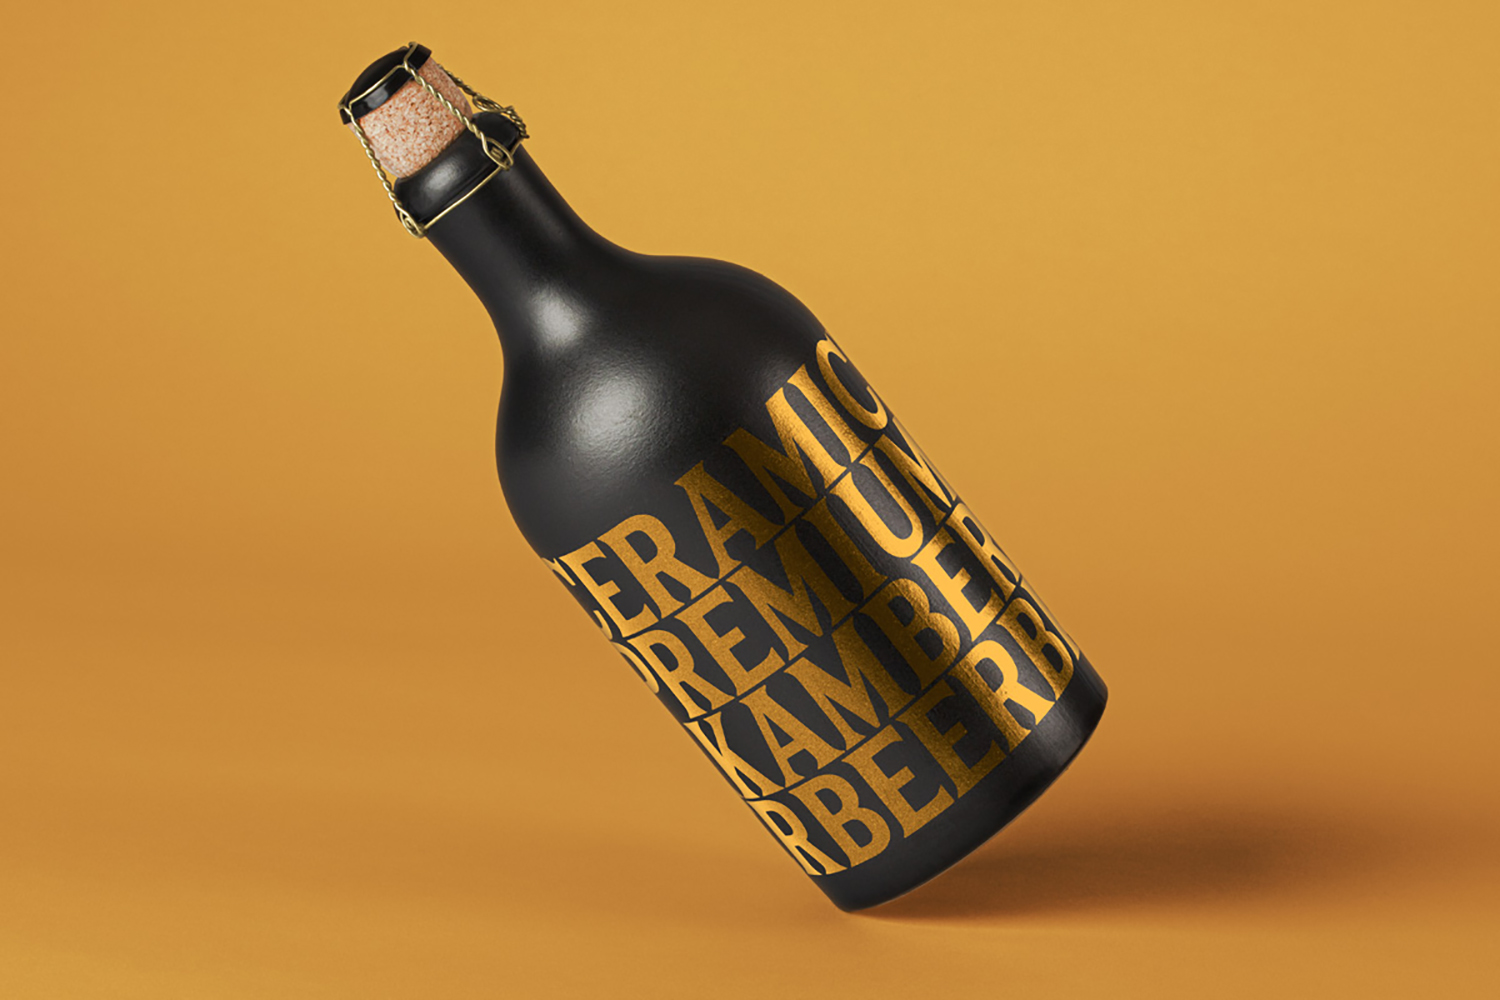 Dark Psd Bottle Mockup